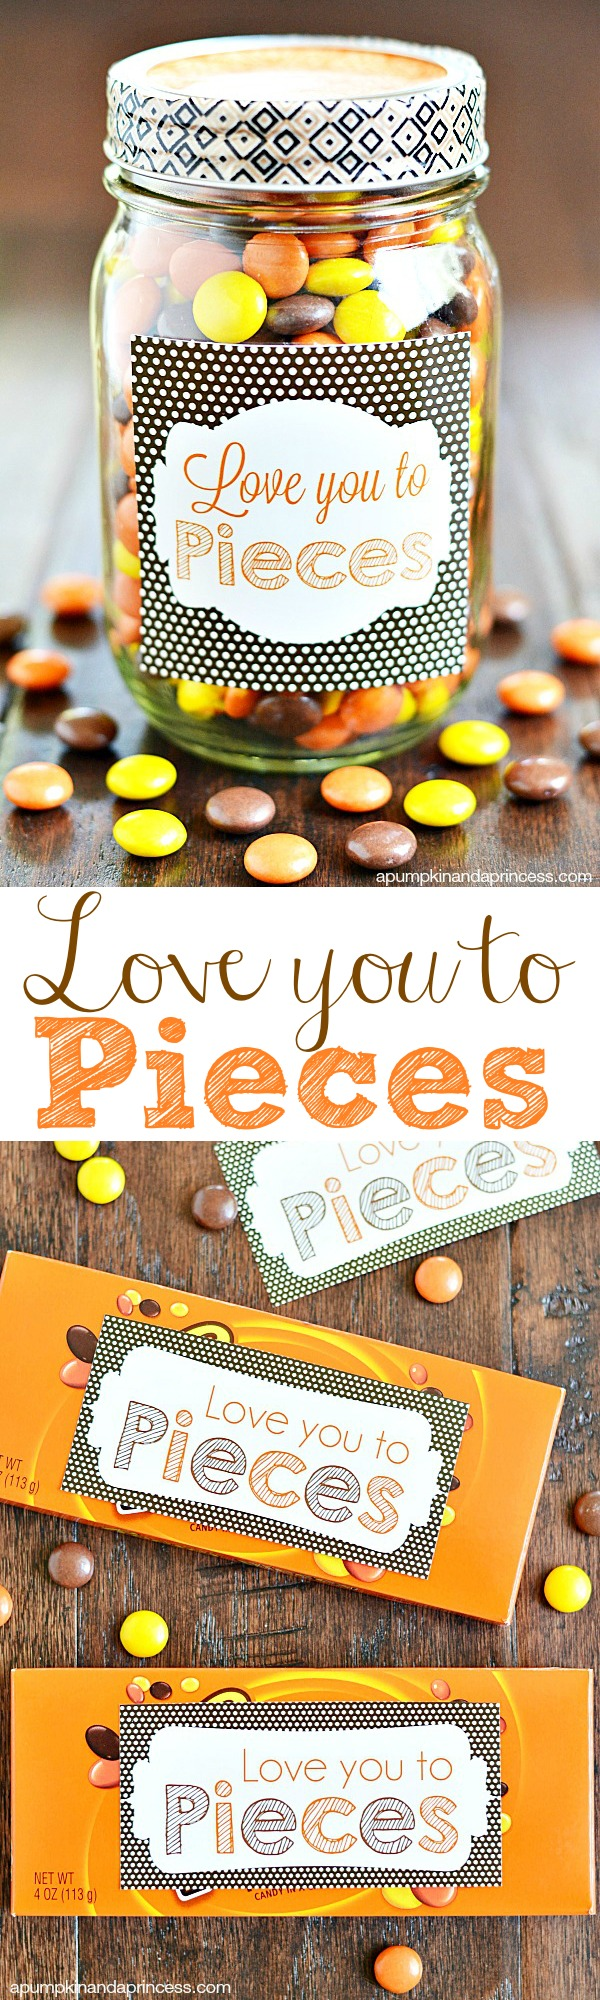 7 Images of I Love You To Pieces Printable